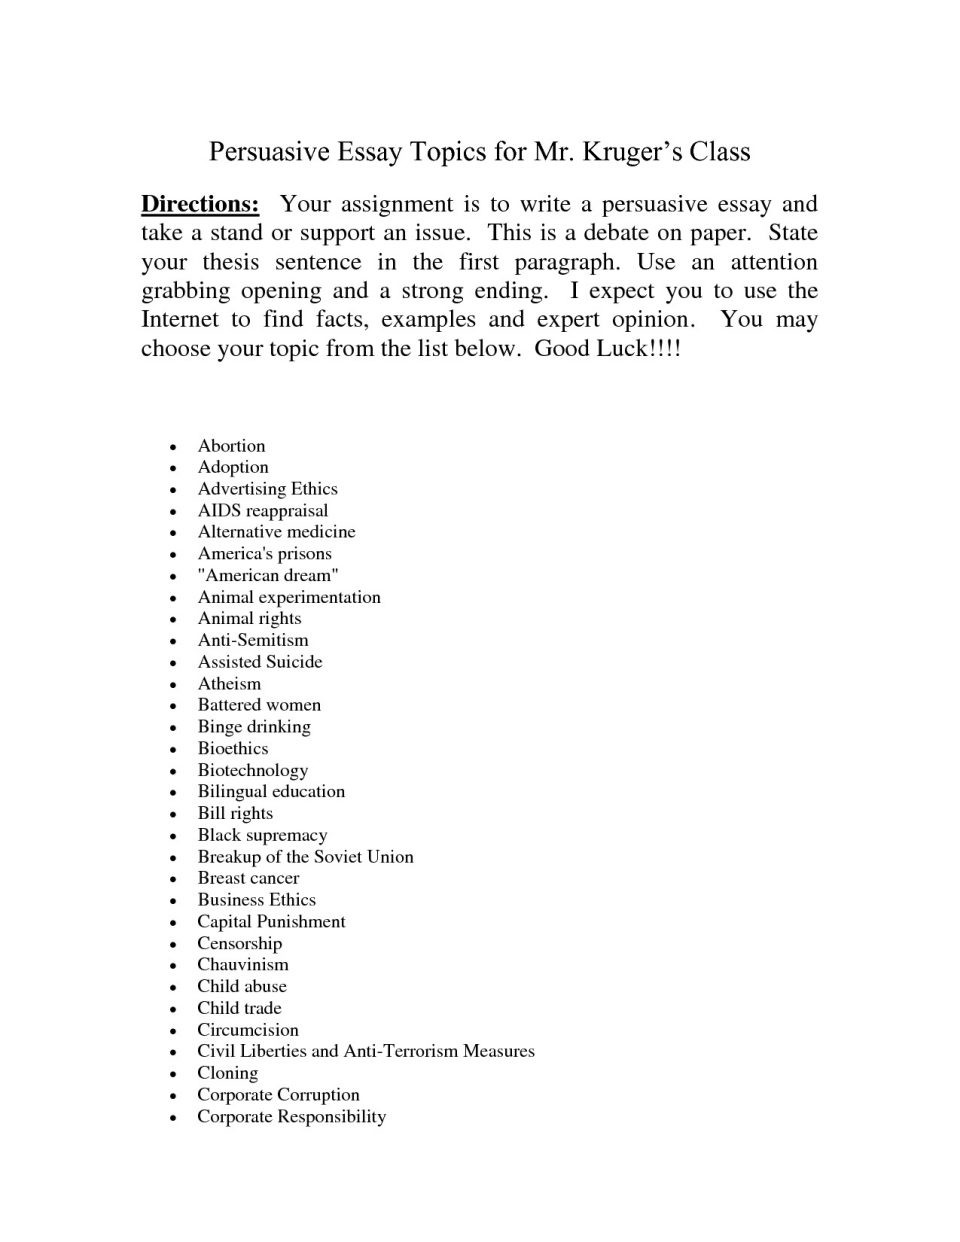 001 Research Paper Topics Topic For Essay Barca Fontanacountryinn Within Good Persuasive Narrative To Write Abo Easy About Personal Descriptive Informative Formidable 2017 Accounting In Computer Science 960